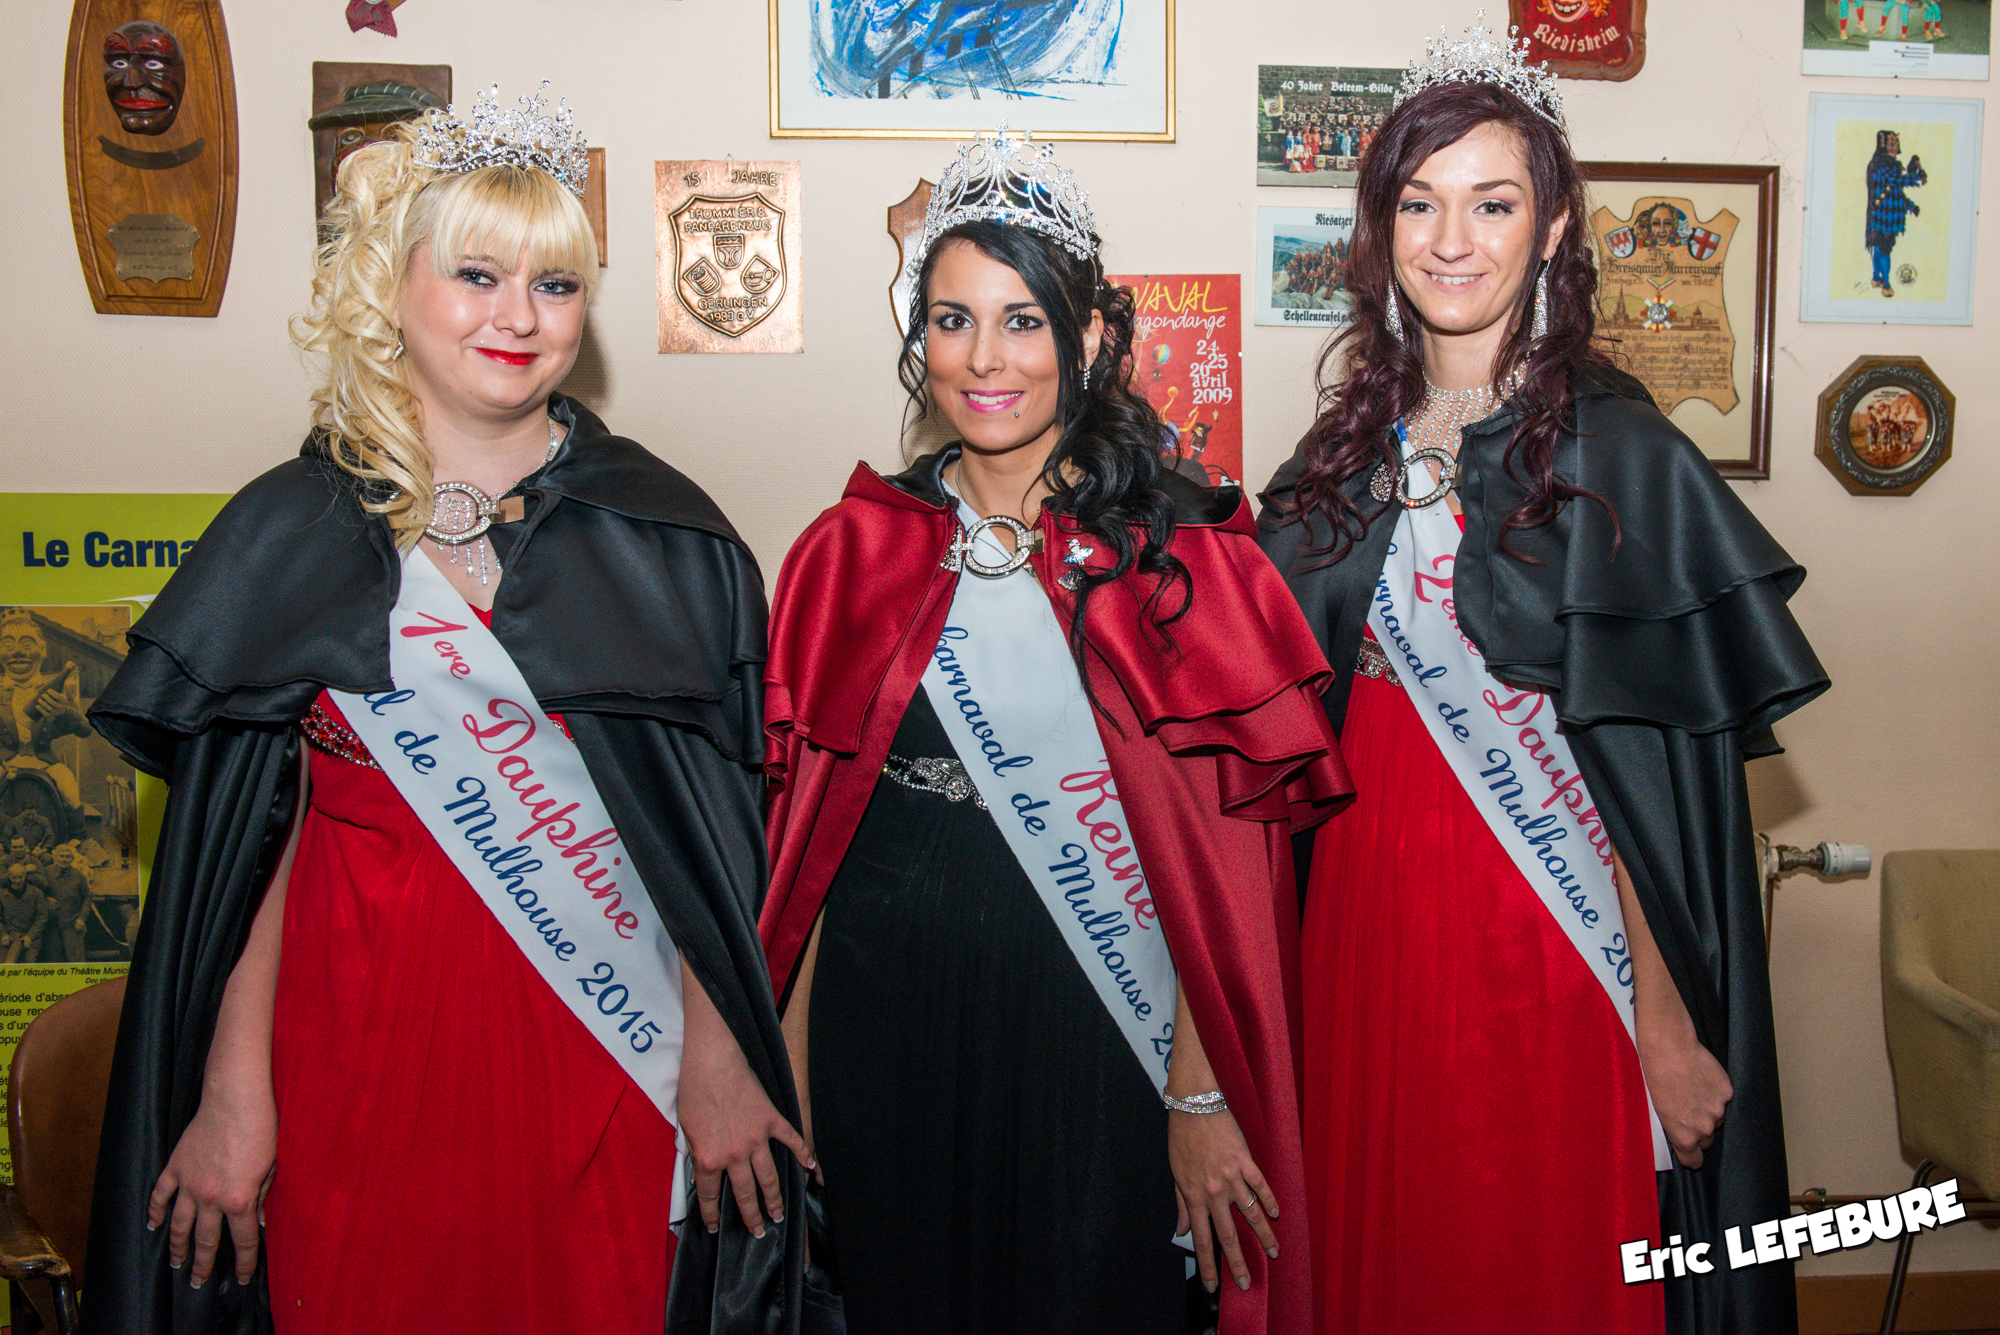 Trio royal carnavalesque 2015 De Mulhouse